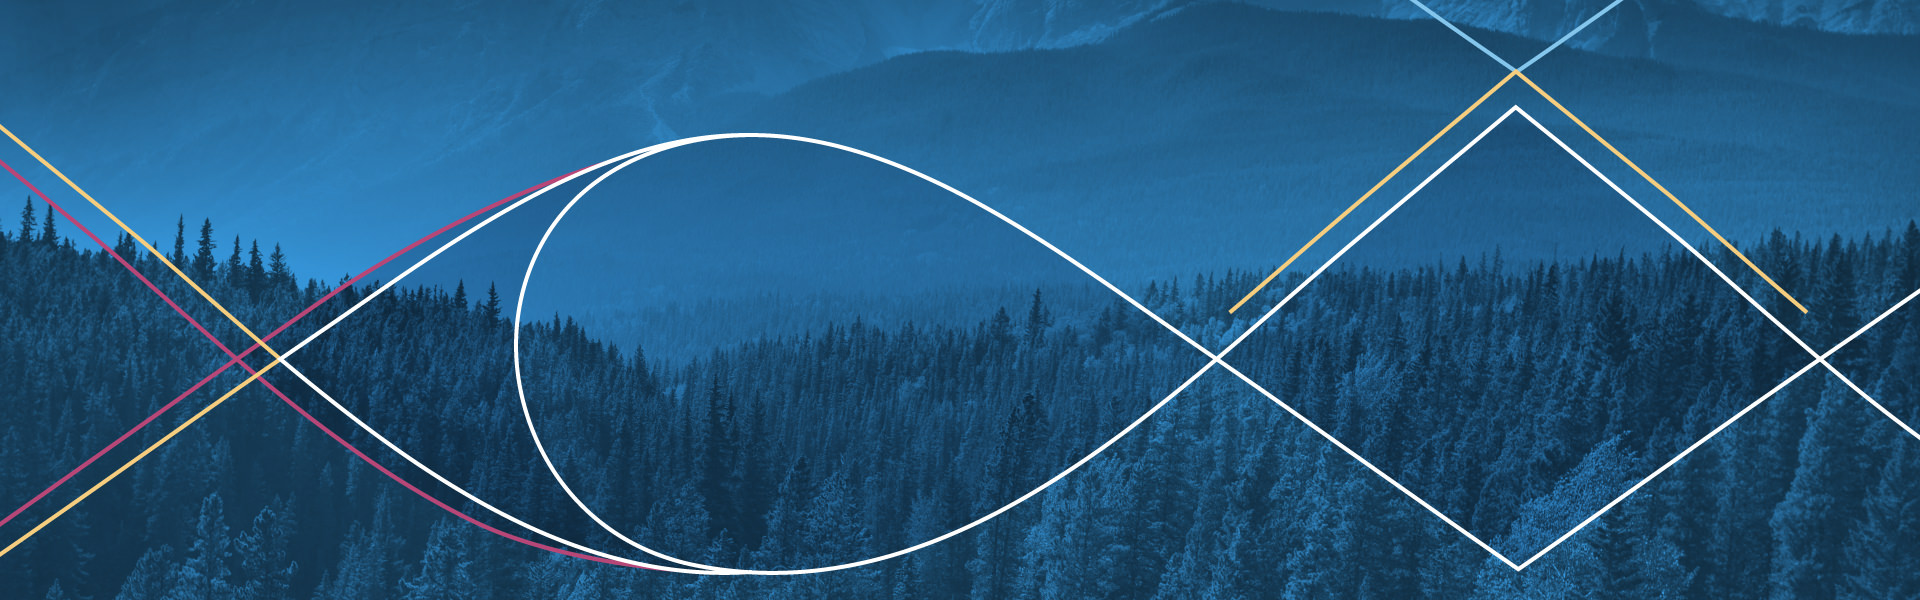 Generic banner image: forest and mountains in blue tones with thin lines flowing on top